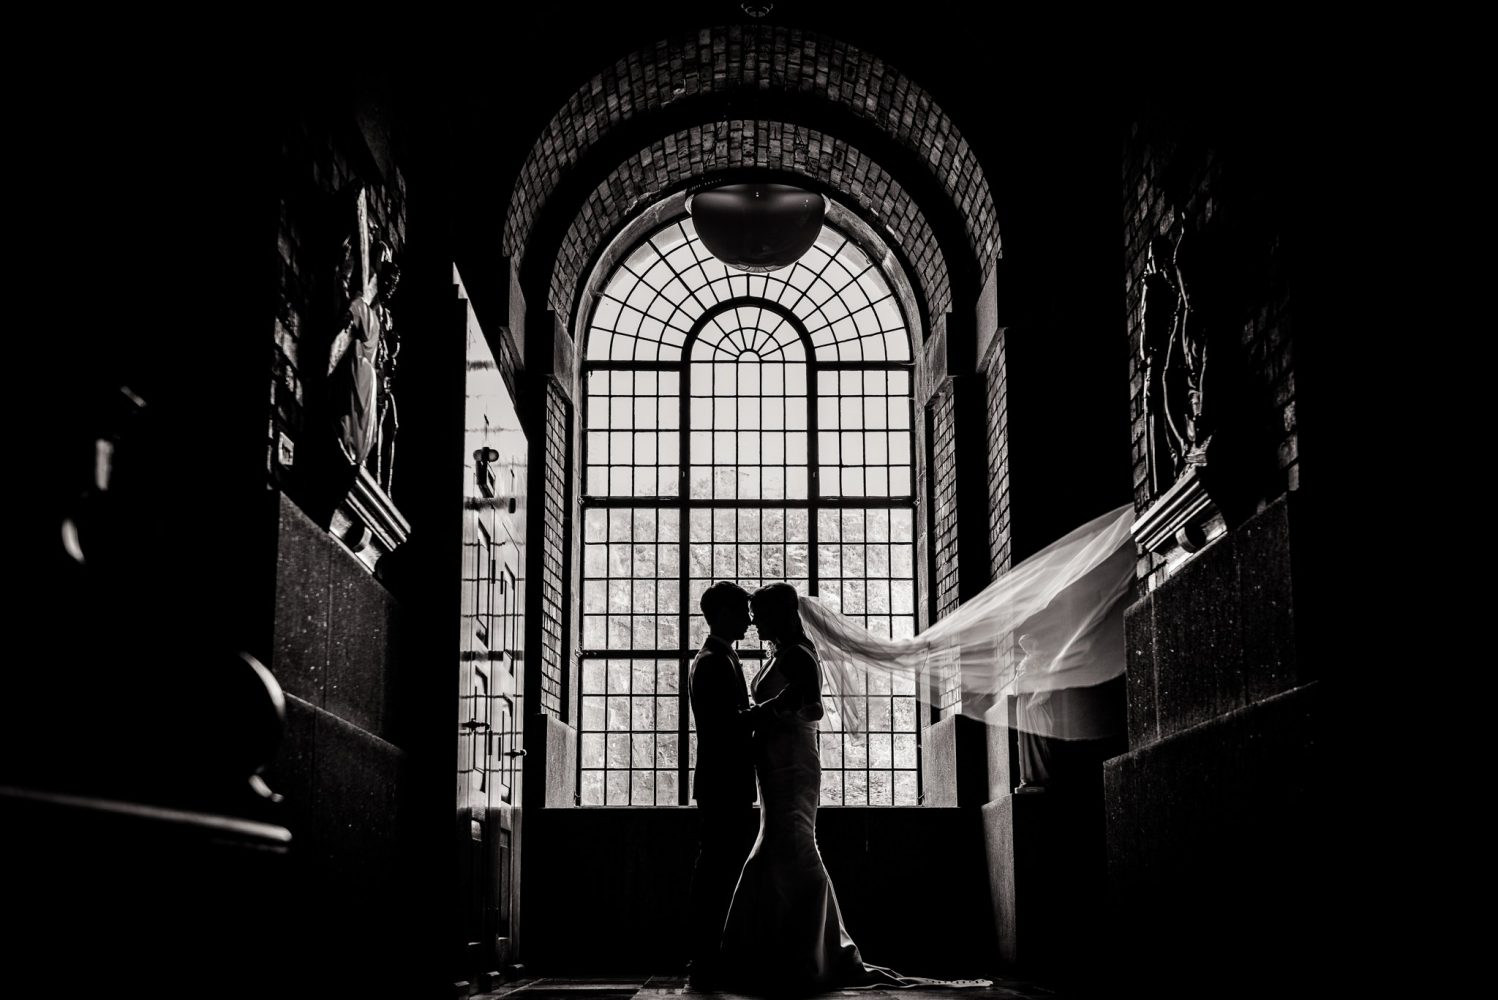 bride and groom silhouette in front of church window